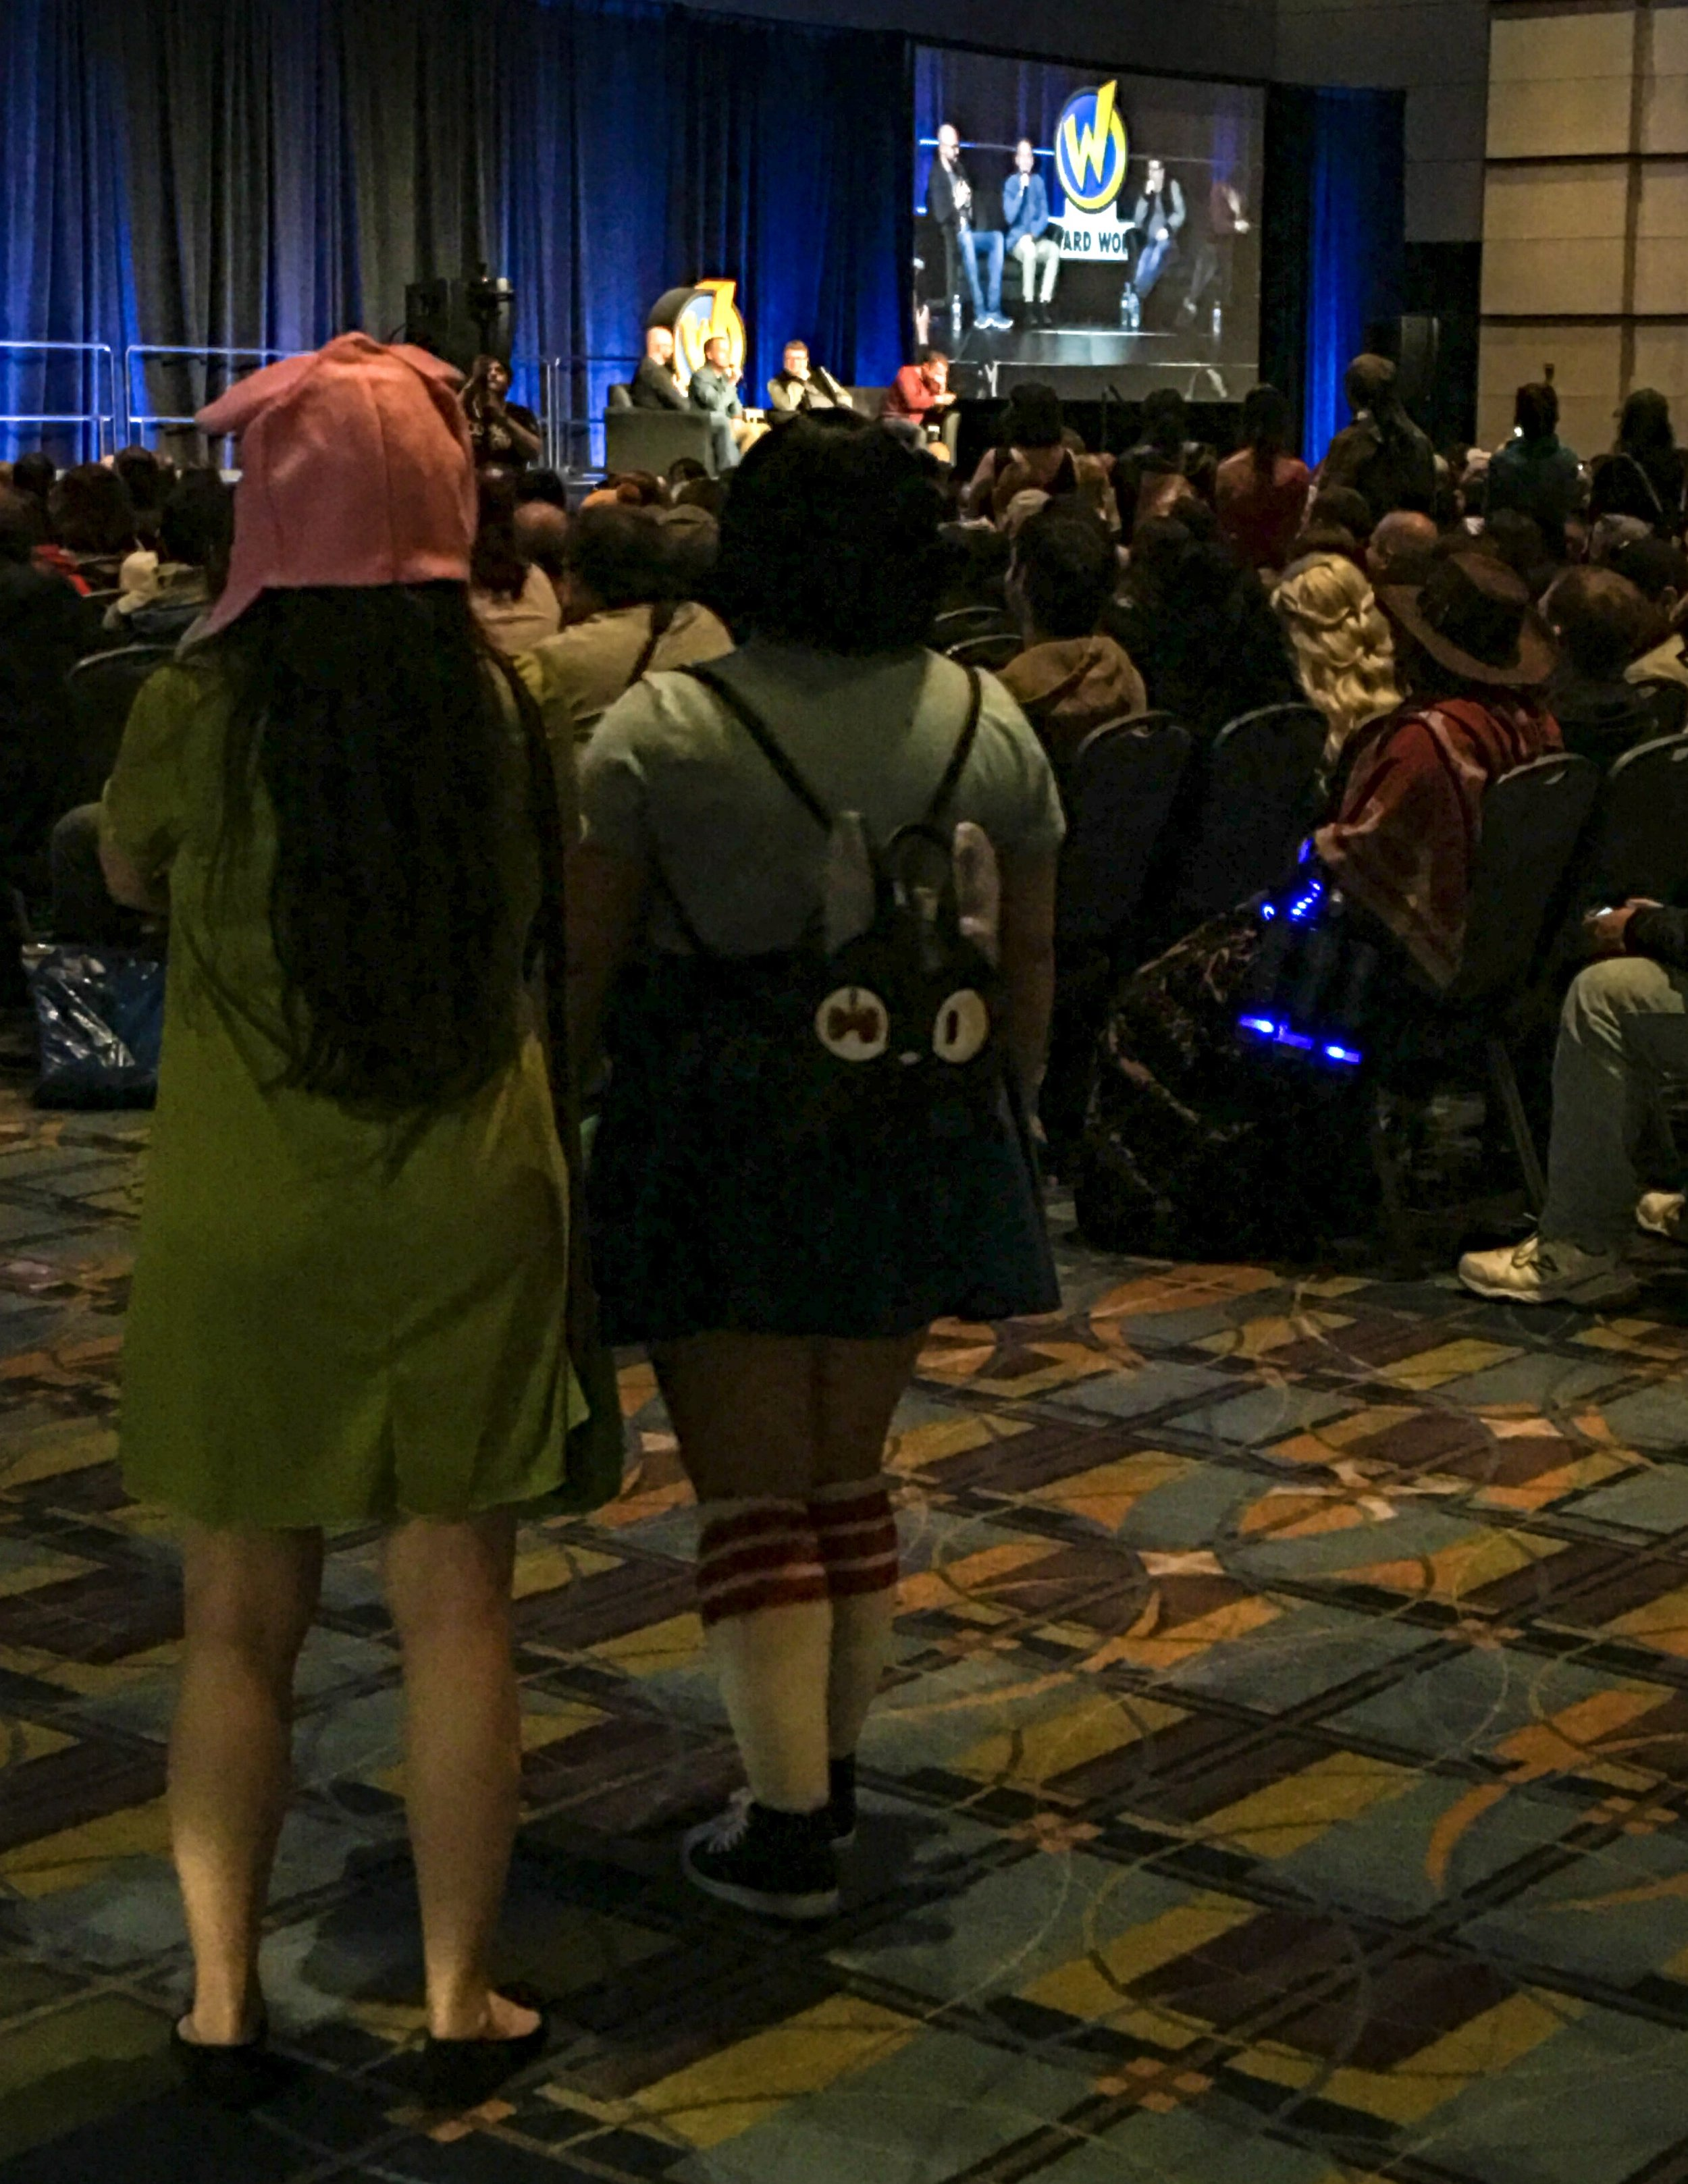 The nerd multiverse: Louise and Tina Belcher watch the panel discussion with Sean Astin, Elijah Wood, and Billy Boyd from The Lord of the Rings.